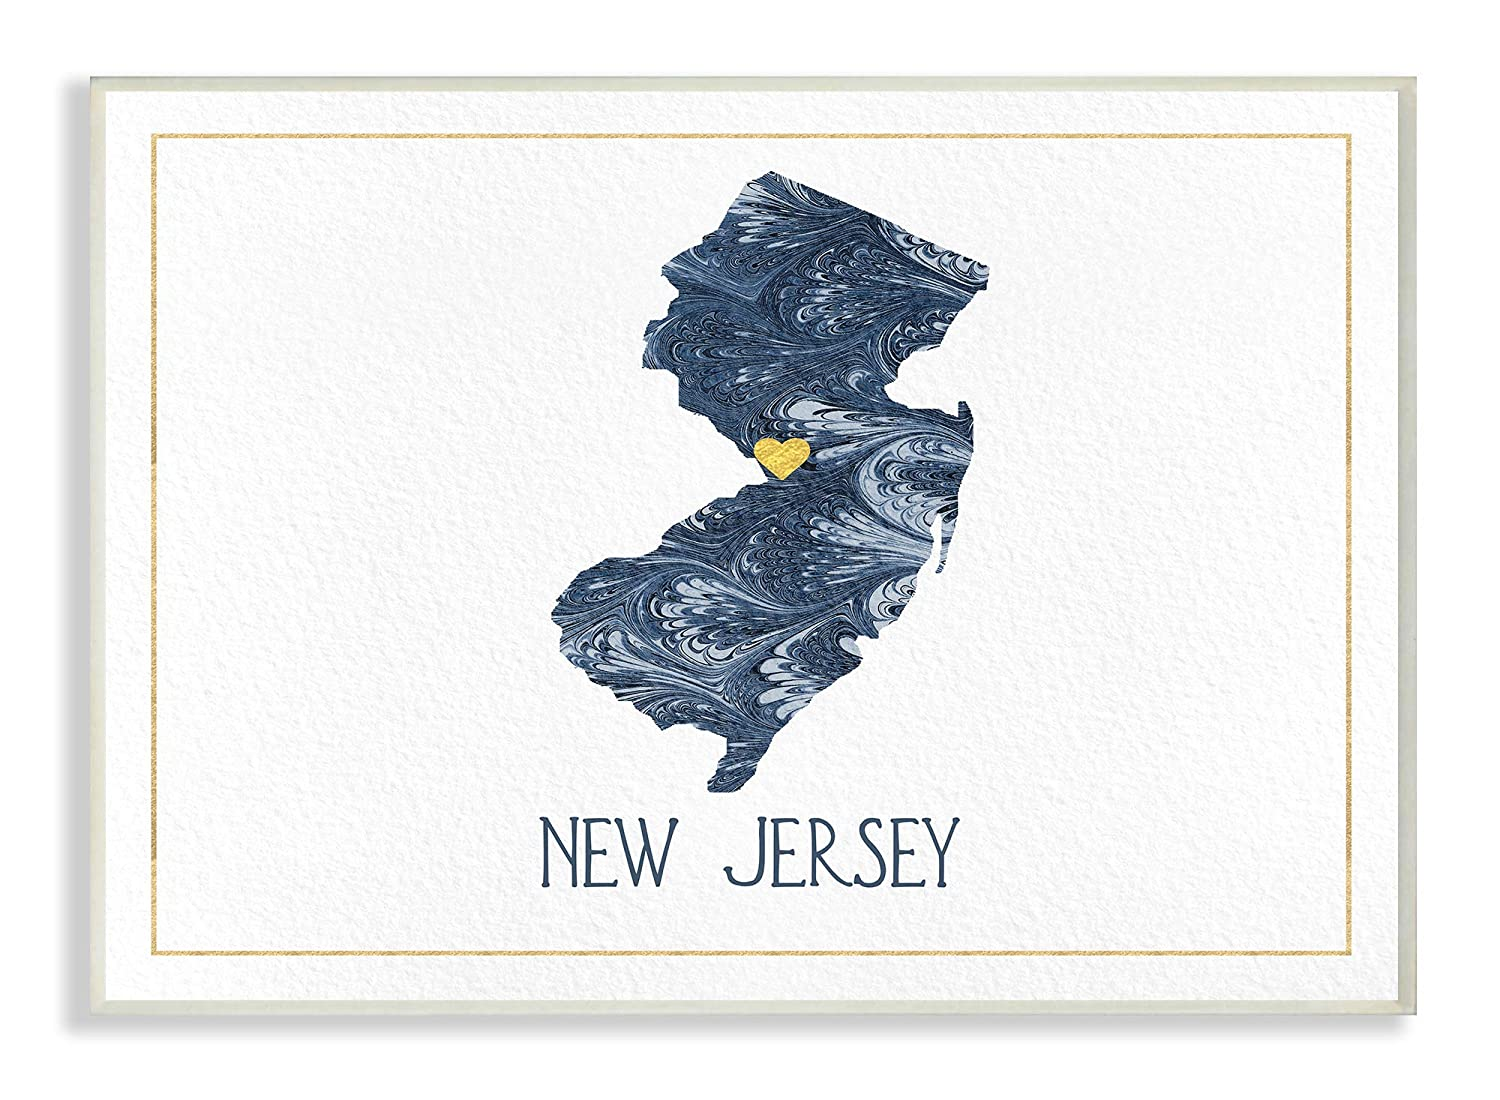 10 x 15 Multi-Color The Stupell Home Decor New Jersey Minimal Blue Marbled Paper Silhouette Wall Plaque Art